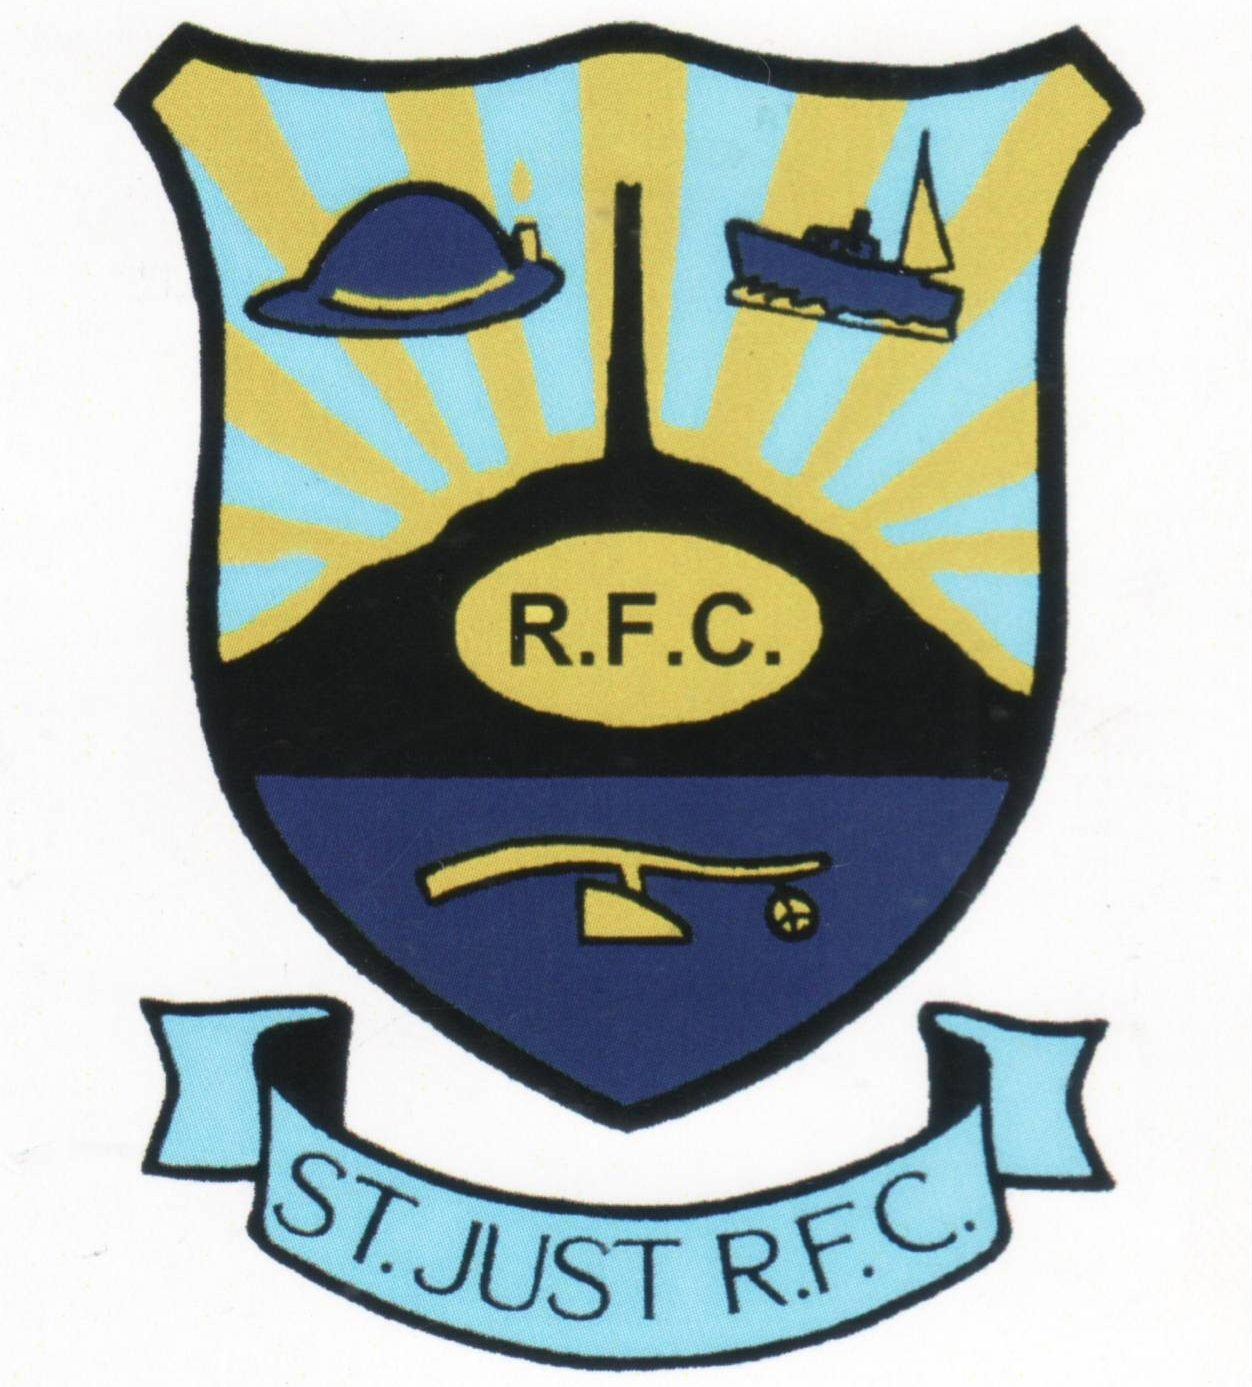 St Just RFC